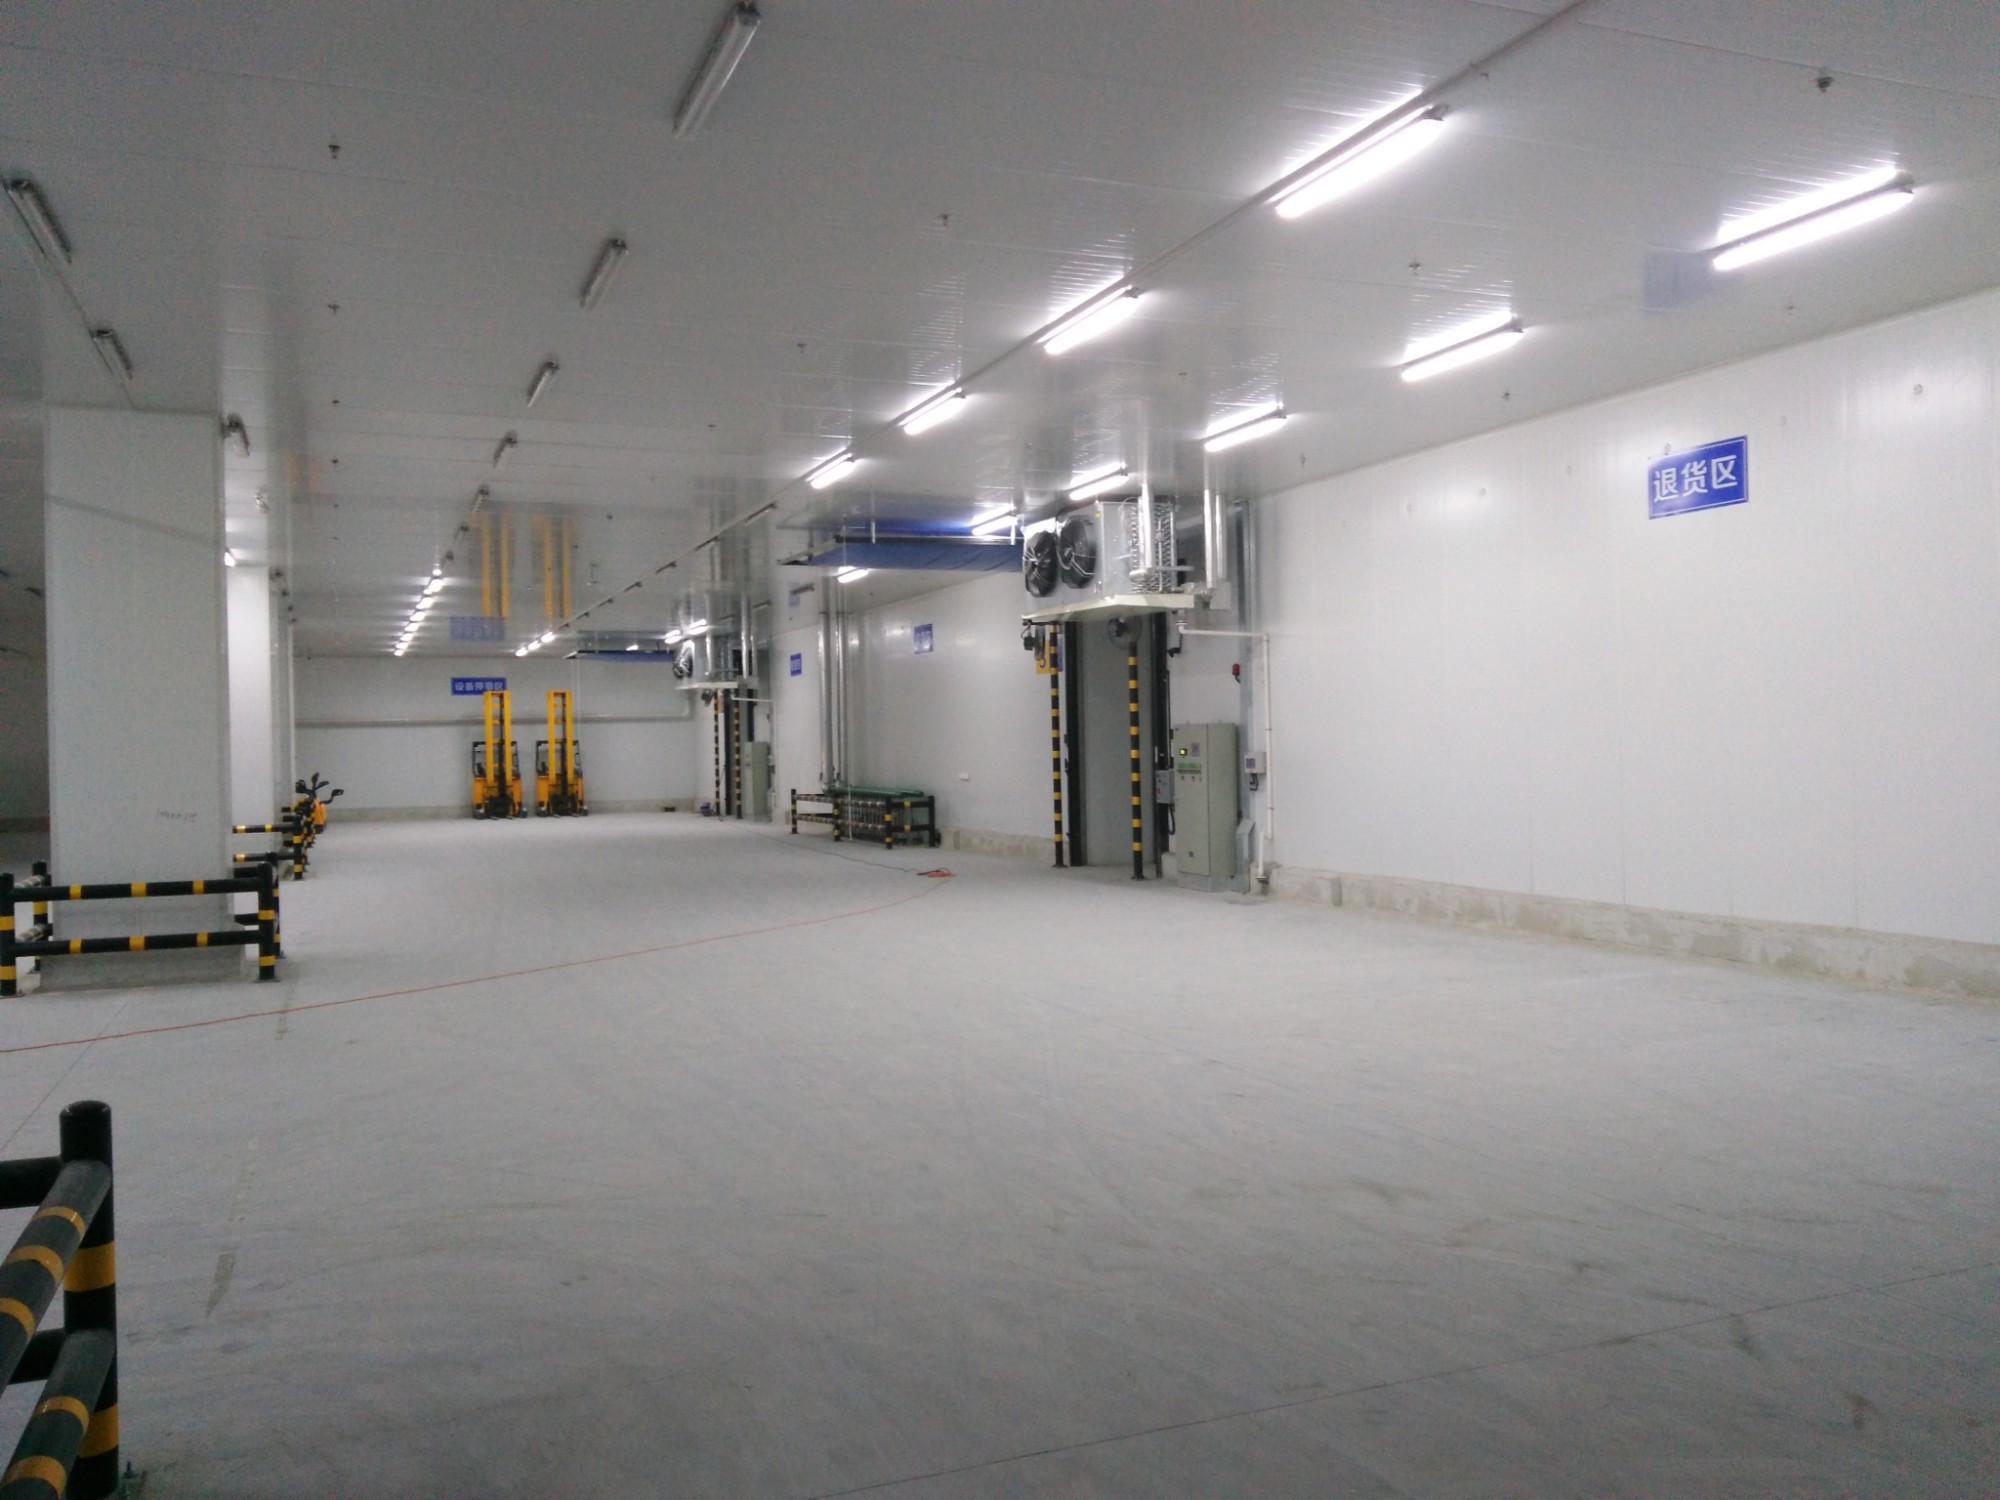 Refrigeration Engineering Solution For Heating Ventilation Central Air Conditioning Manufacturers, Refrigeration Engineering Solution For Heating Ventilation Central Air Conditioning Factory, Supply Refrigeration Engineering Solution For Heating Ventilation Central Air Conditioning